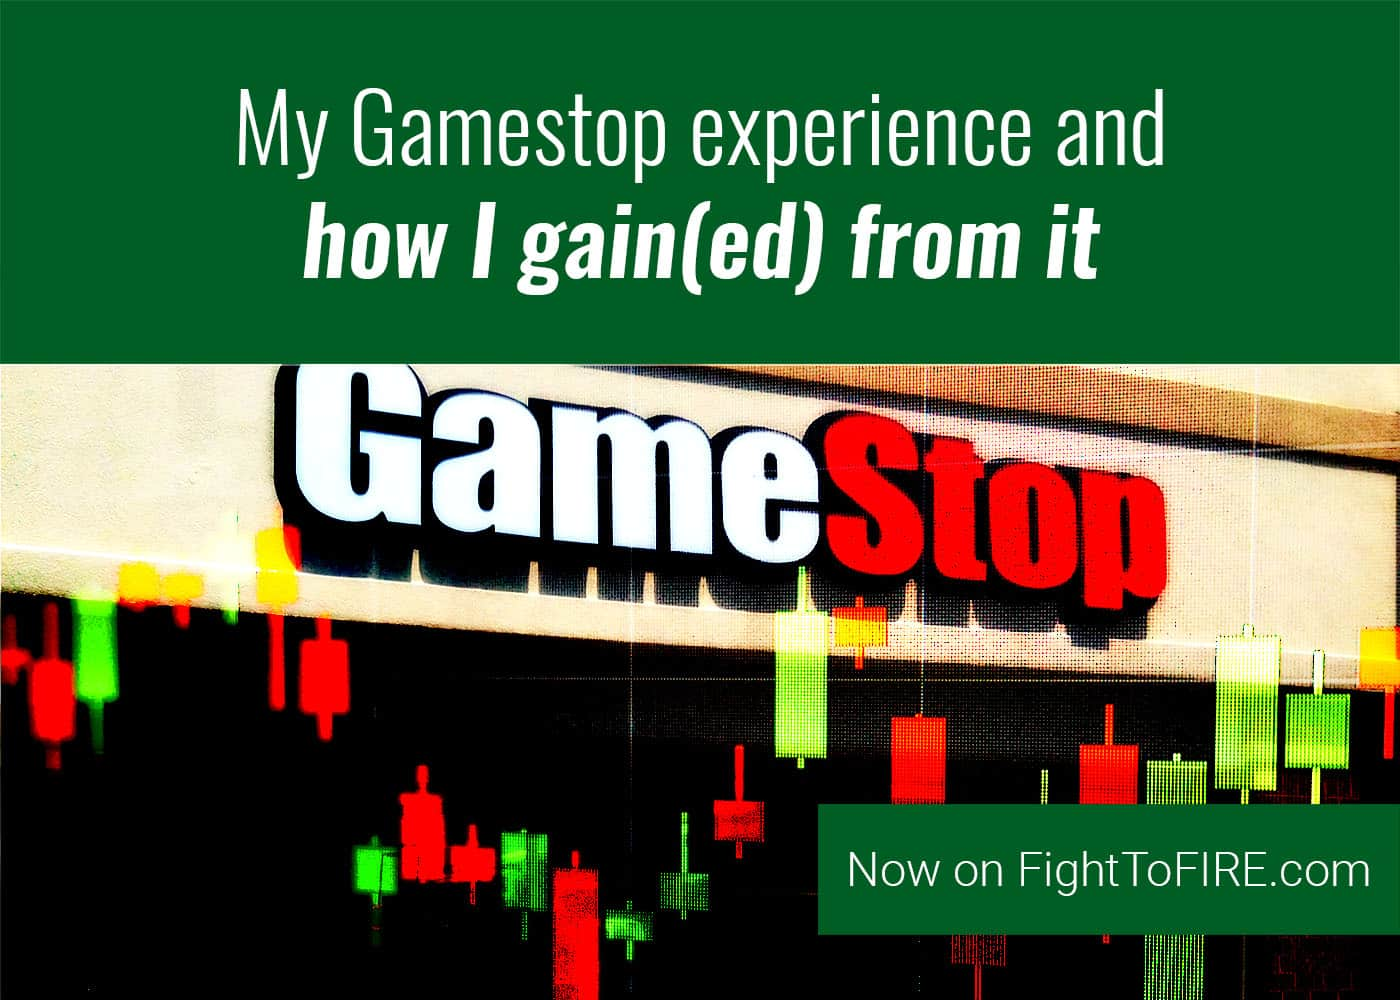 My GameStop experience and how I gained from it